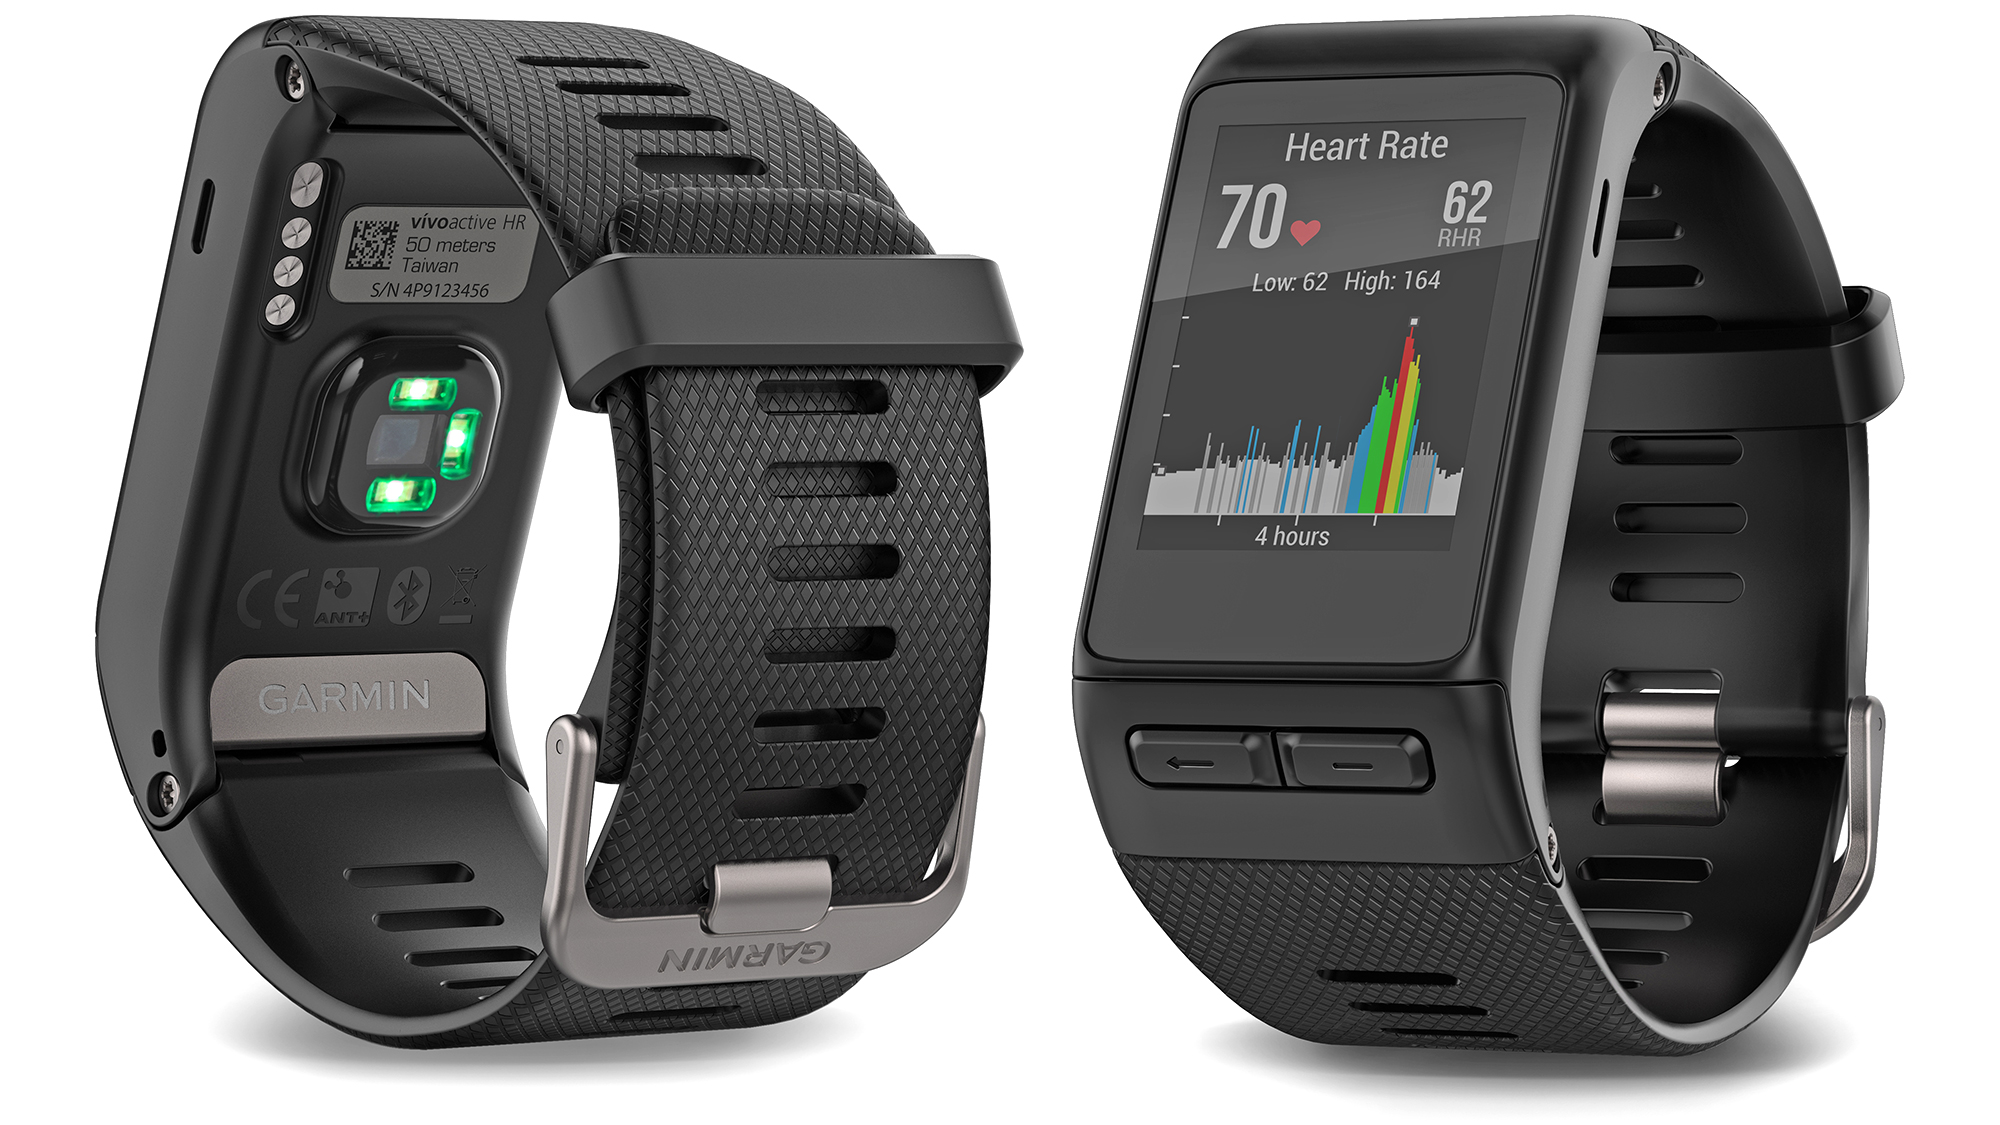 Garmin's Vívofit 3 And Vívoactive HR Australian Pricing ...